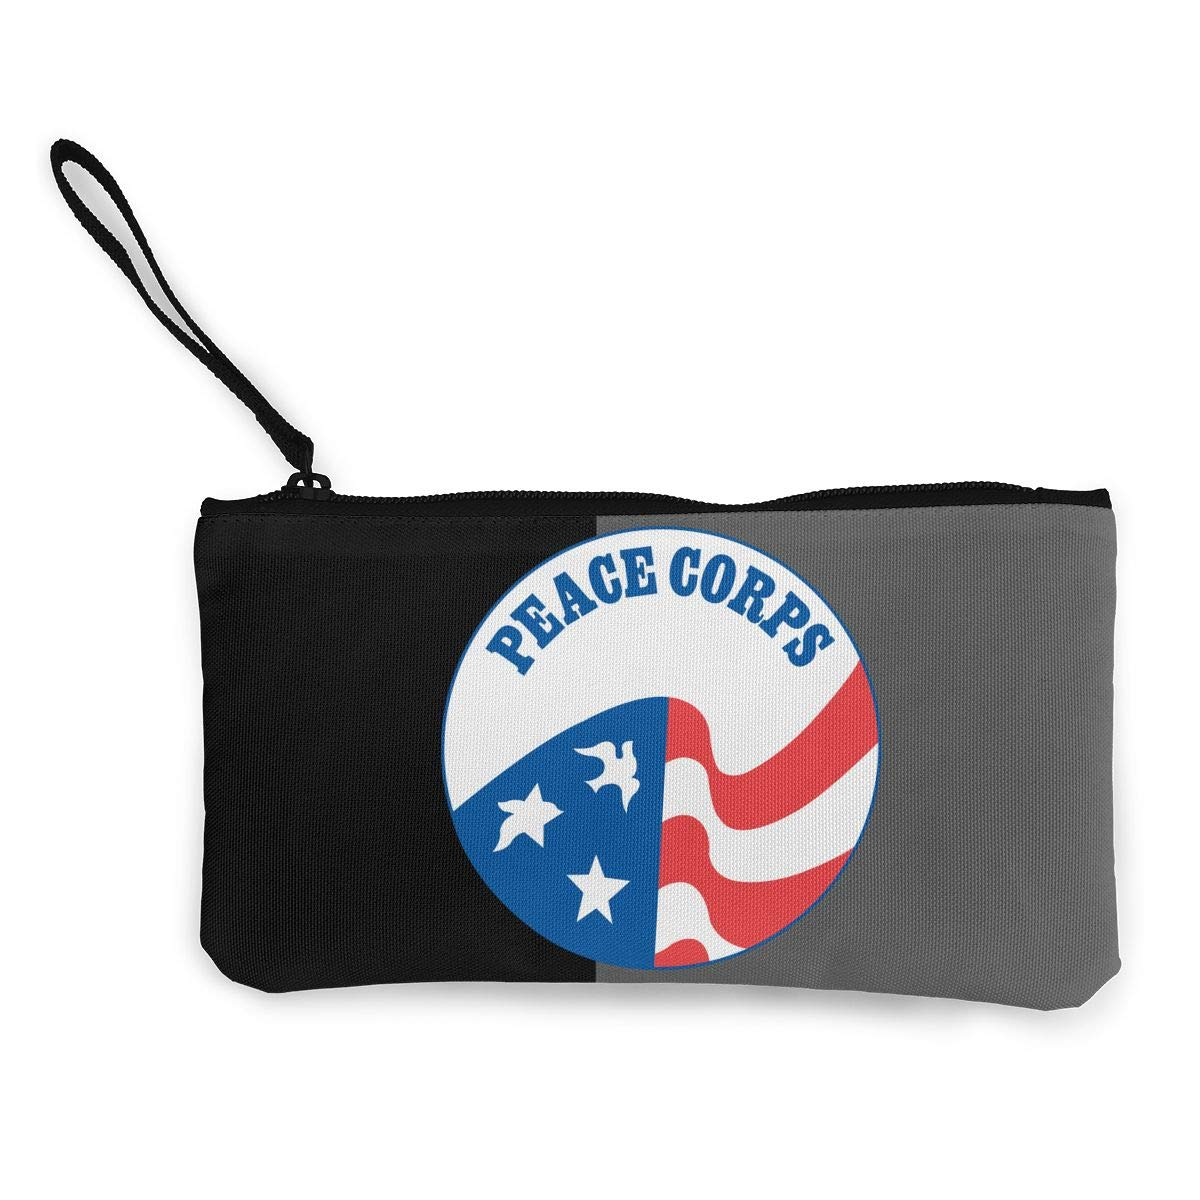 2000px-US-PeaceCorps-Logo.svg Unisex Canvas Coin Purse Wallet Coin Purse Canvas Zipper Wallet